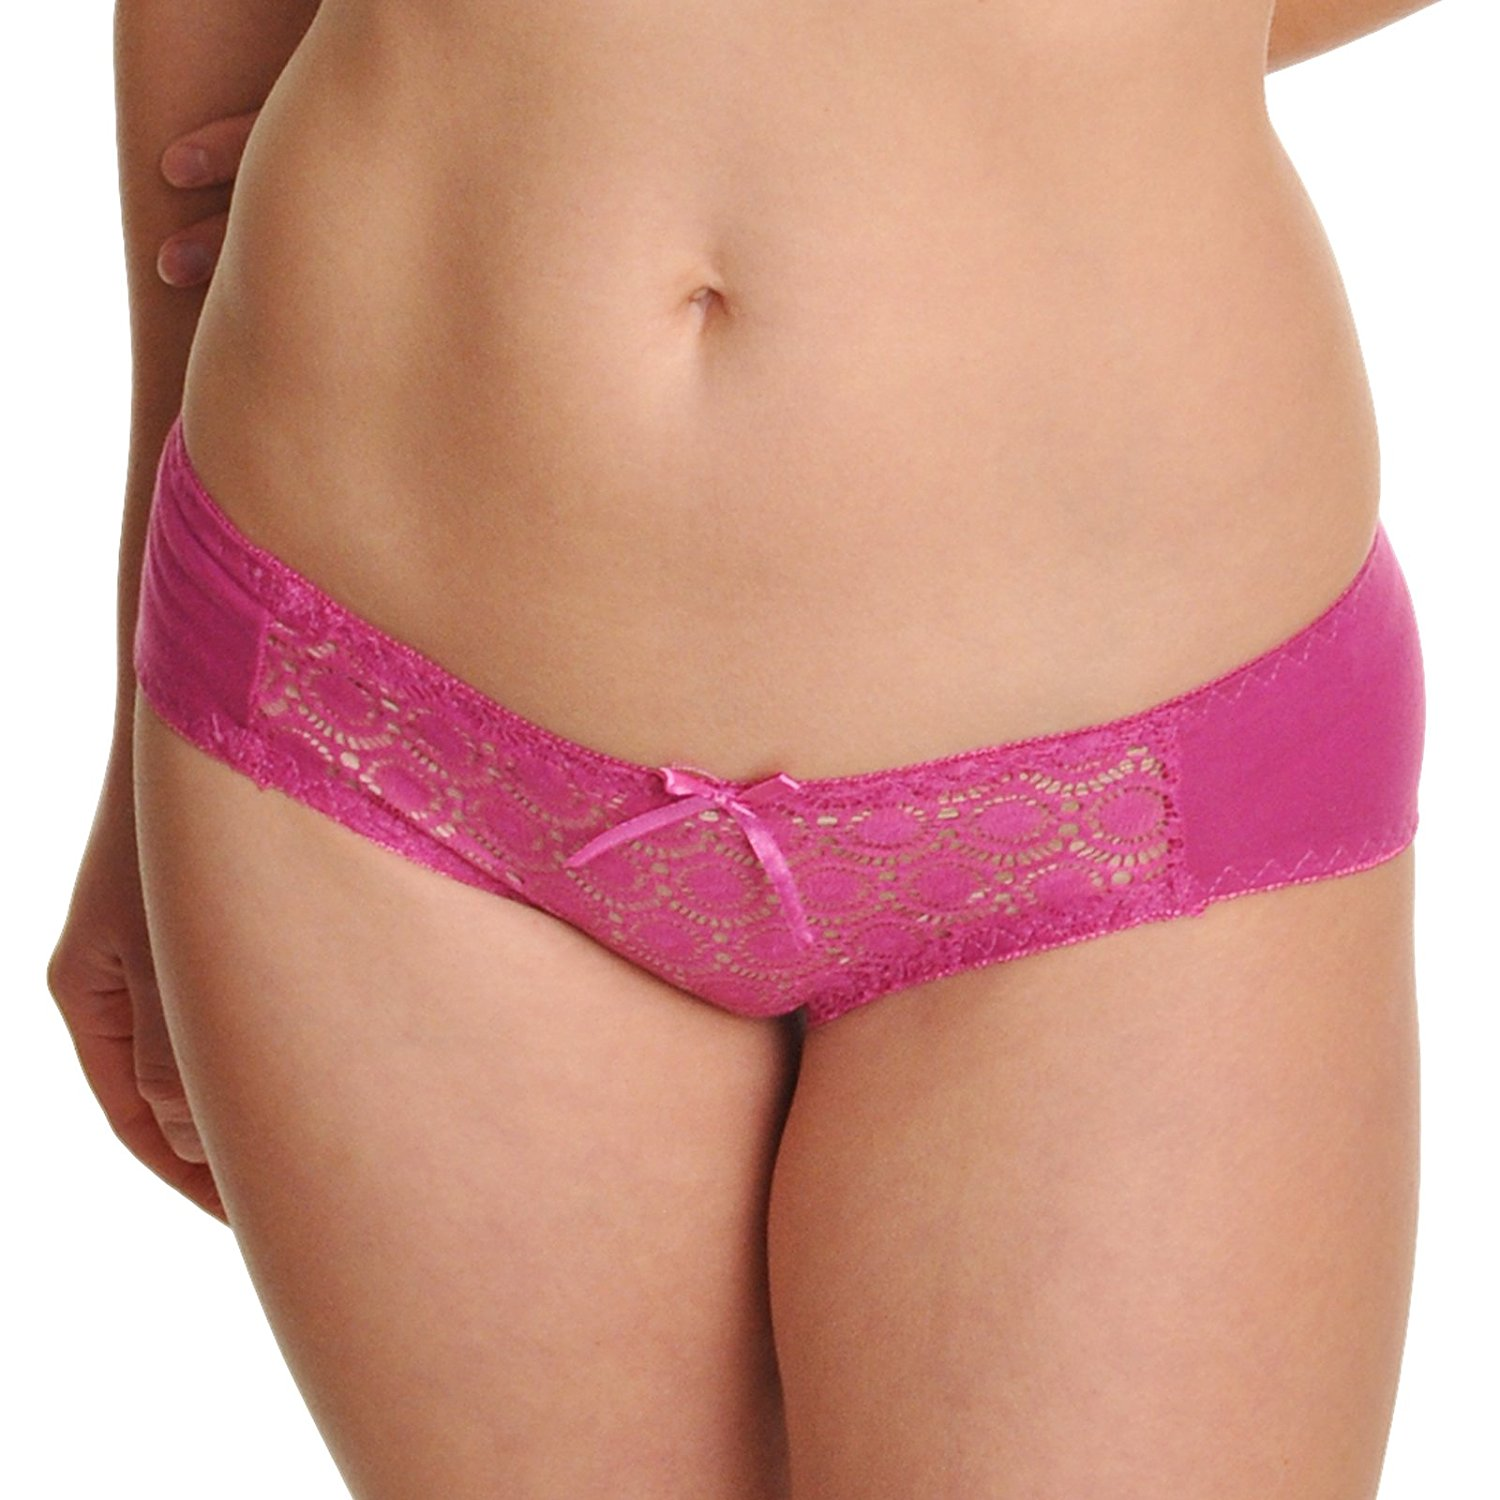 bbe52281c998 Cheap Bras And Panties, find Bras And Panties deals on line at ...